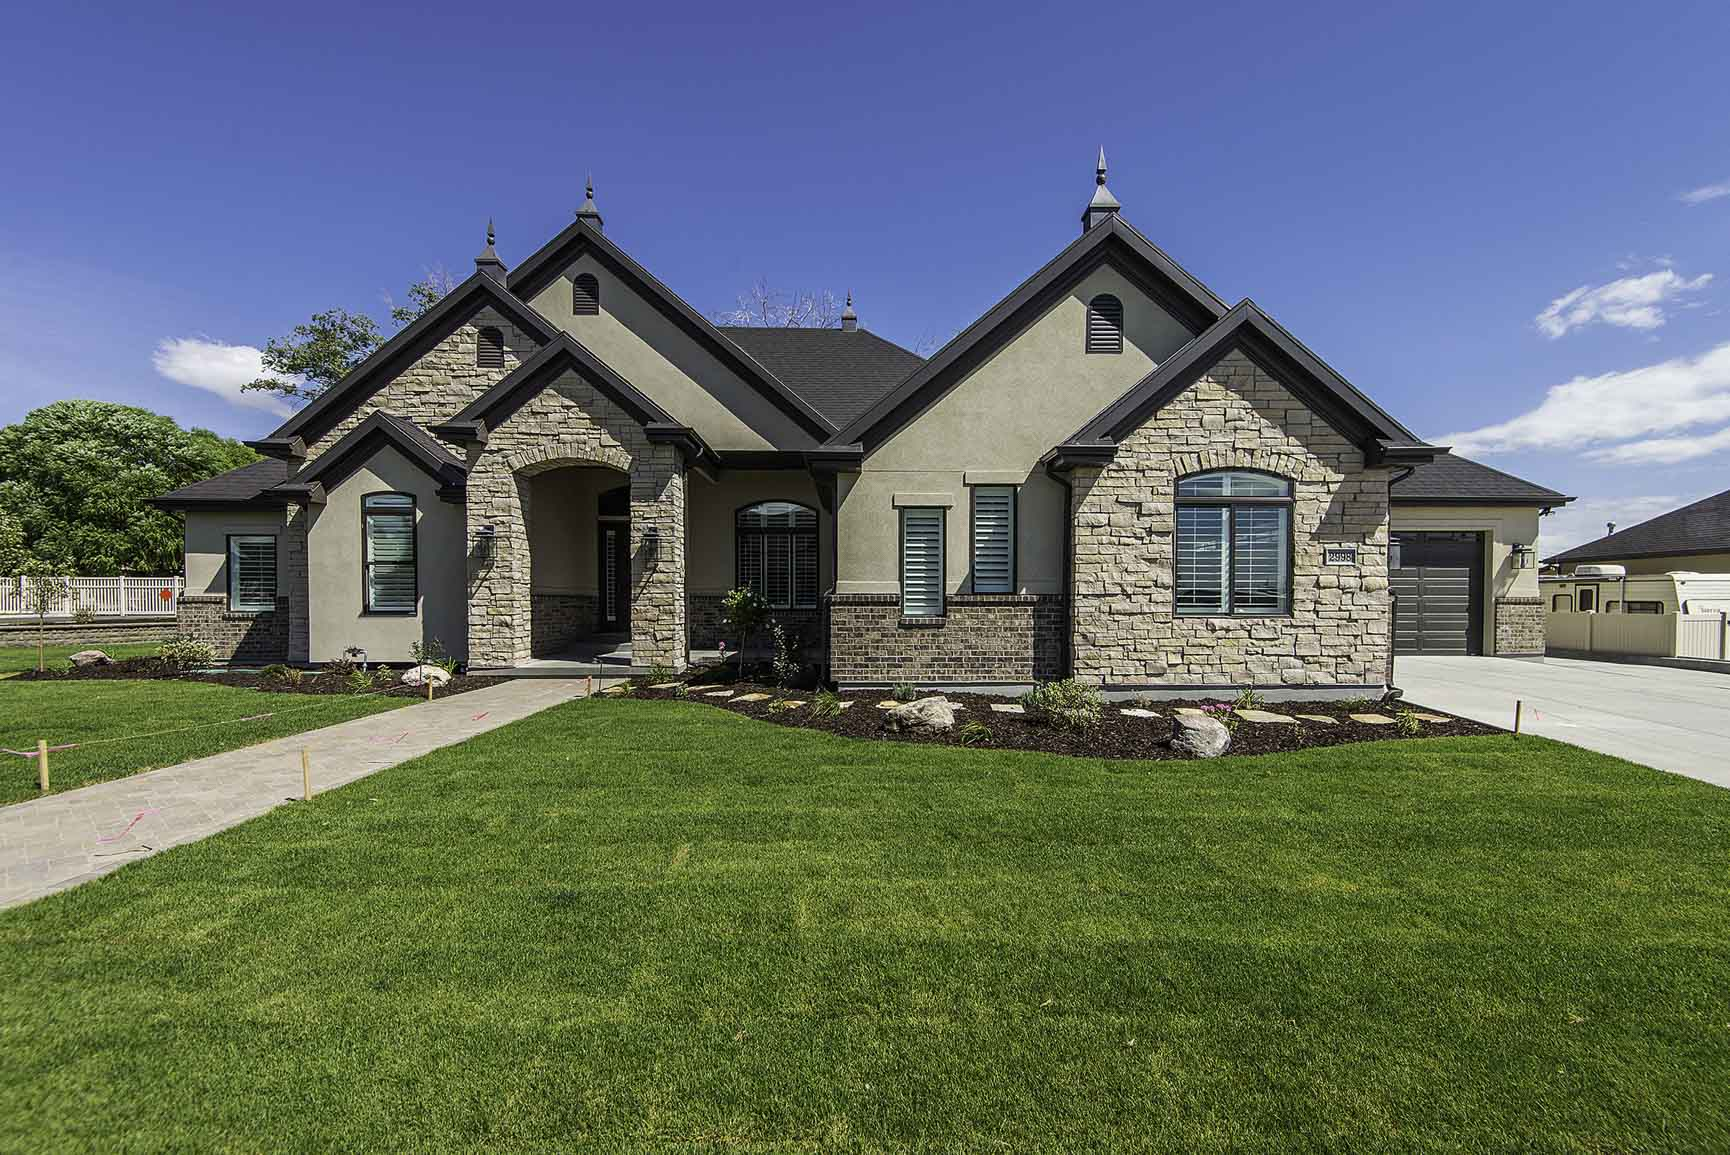 Wasatch-Shutter-Exterior-Photos-22